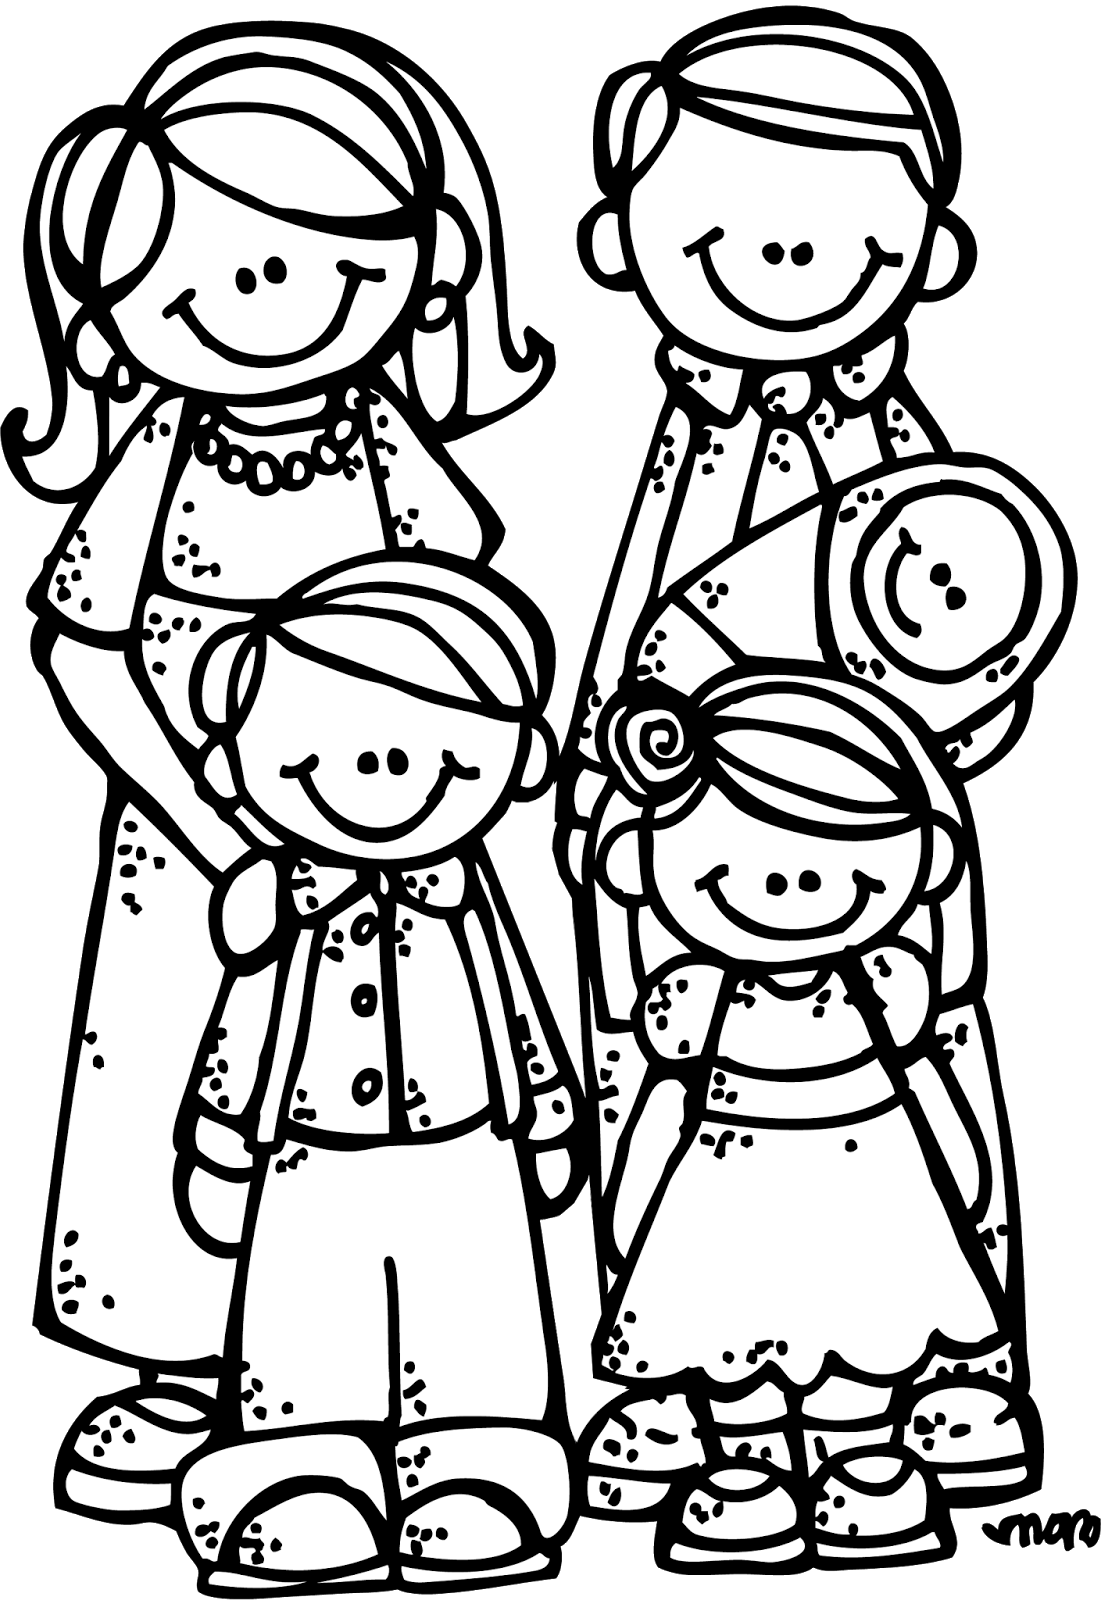 Big family clipart black and white clip art freeuse Lds Family PNG HD Transparent Lds Family HD.PNG Images. | PlusPNG clip art freeuse